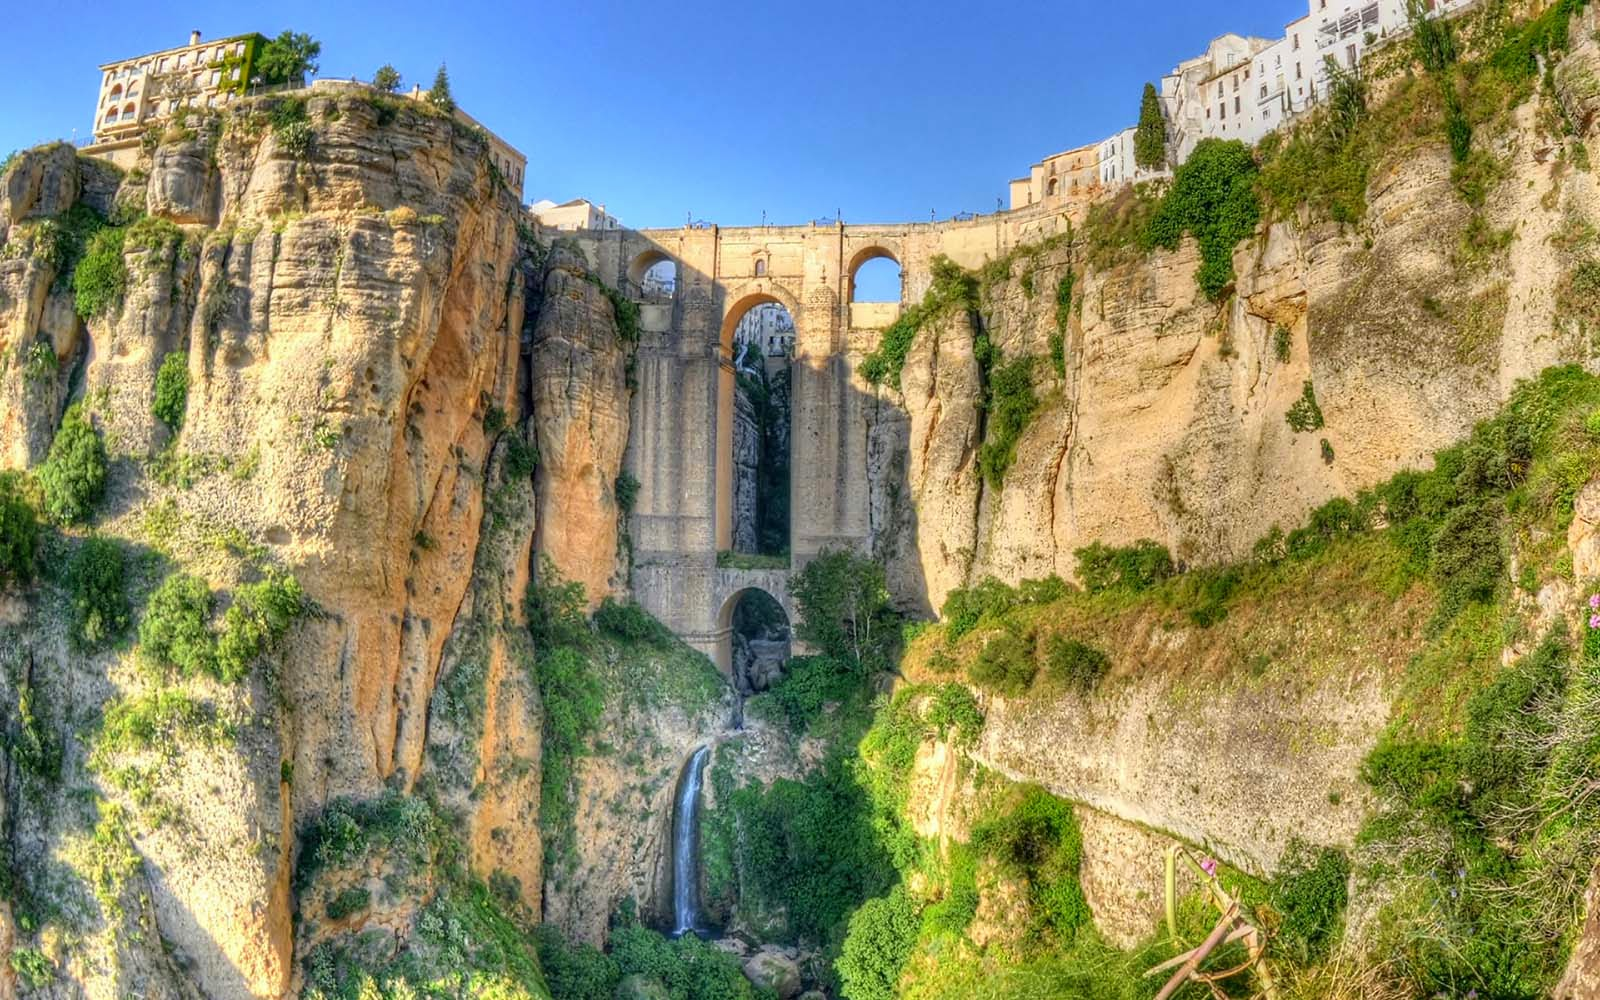 Ronda Spain  City pictures : Ronda Spain, European's Most Magnificent Village | Inspired Tours